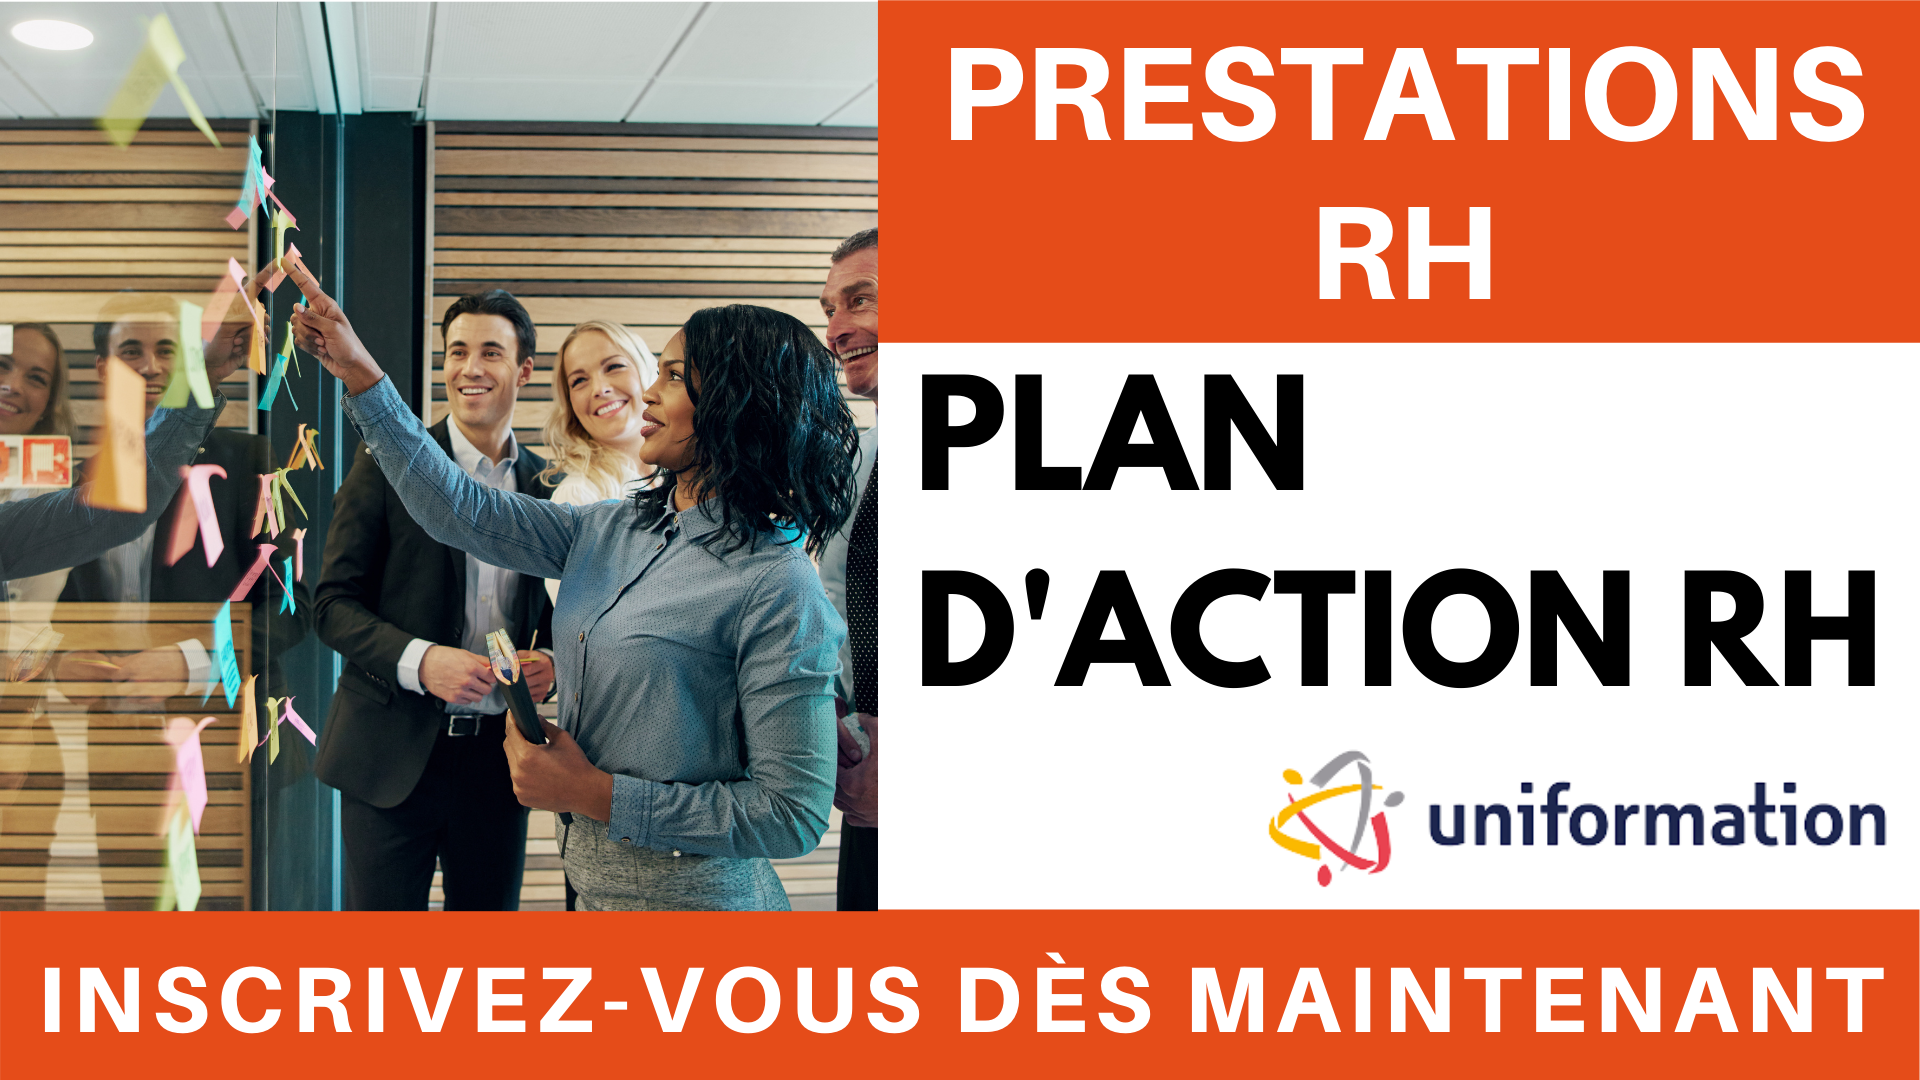 Prestations RH - Plan d'action RH